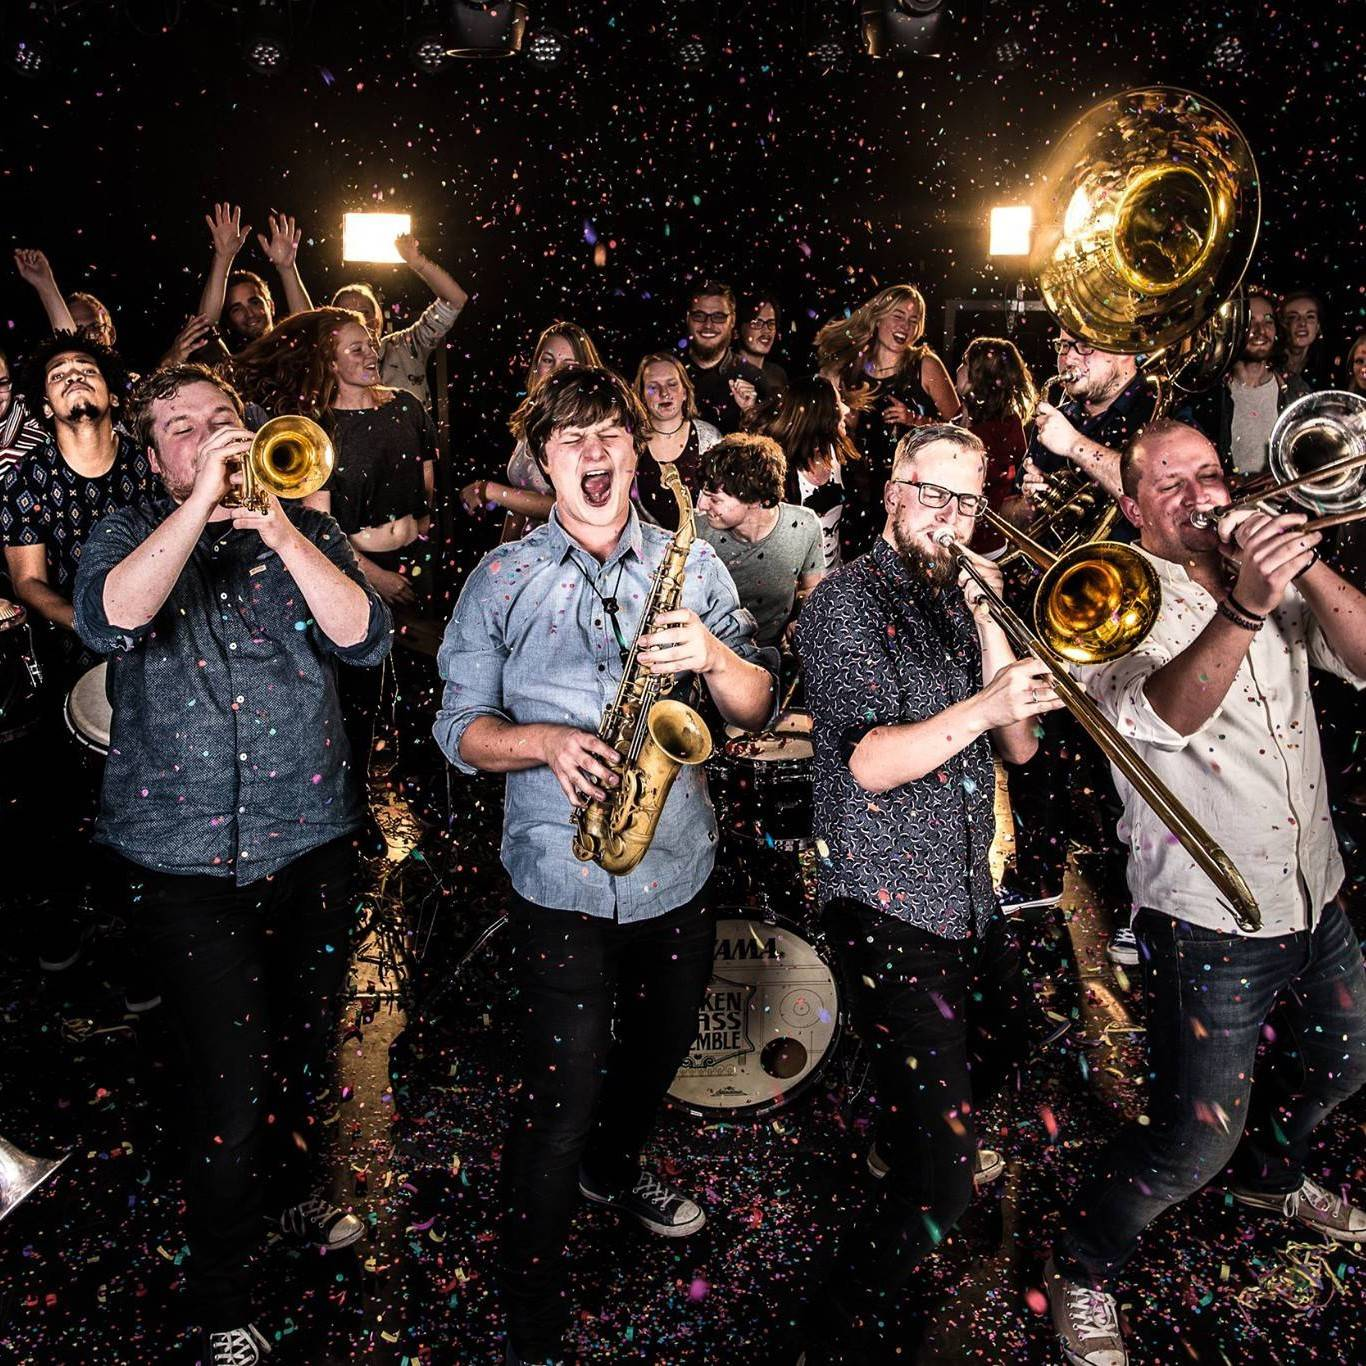 Broken brass ensemble boeken